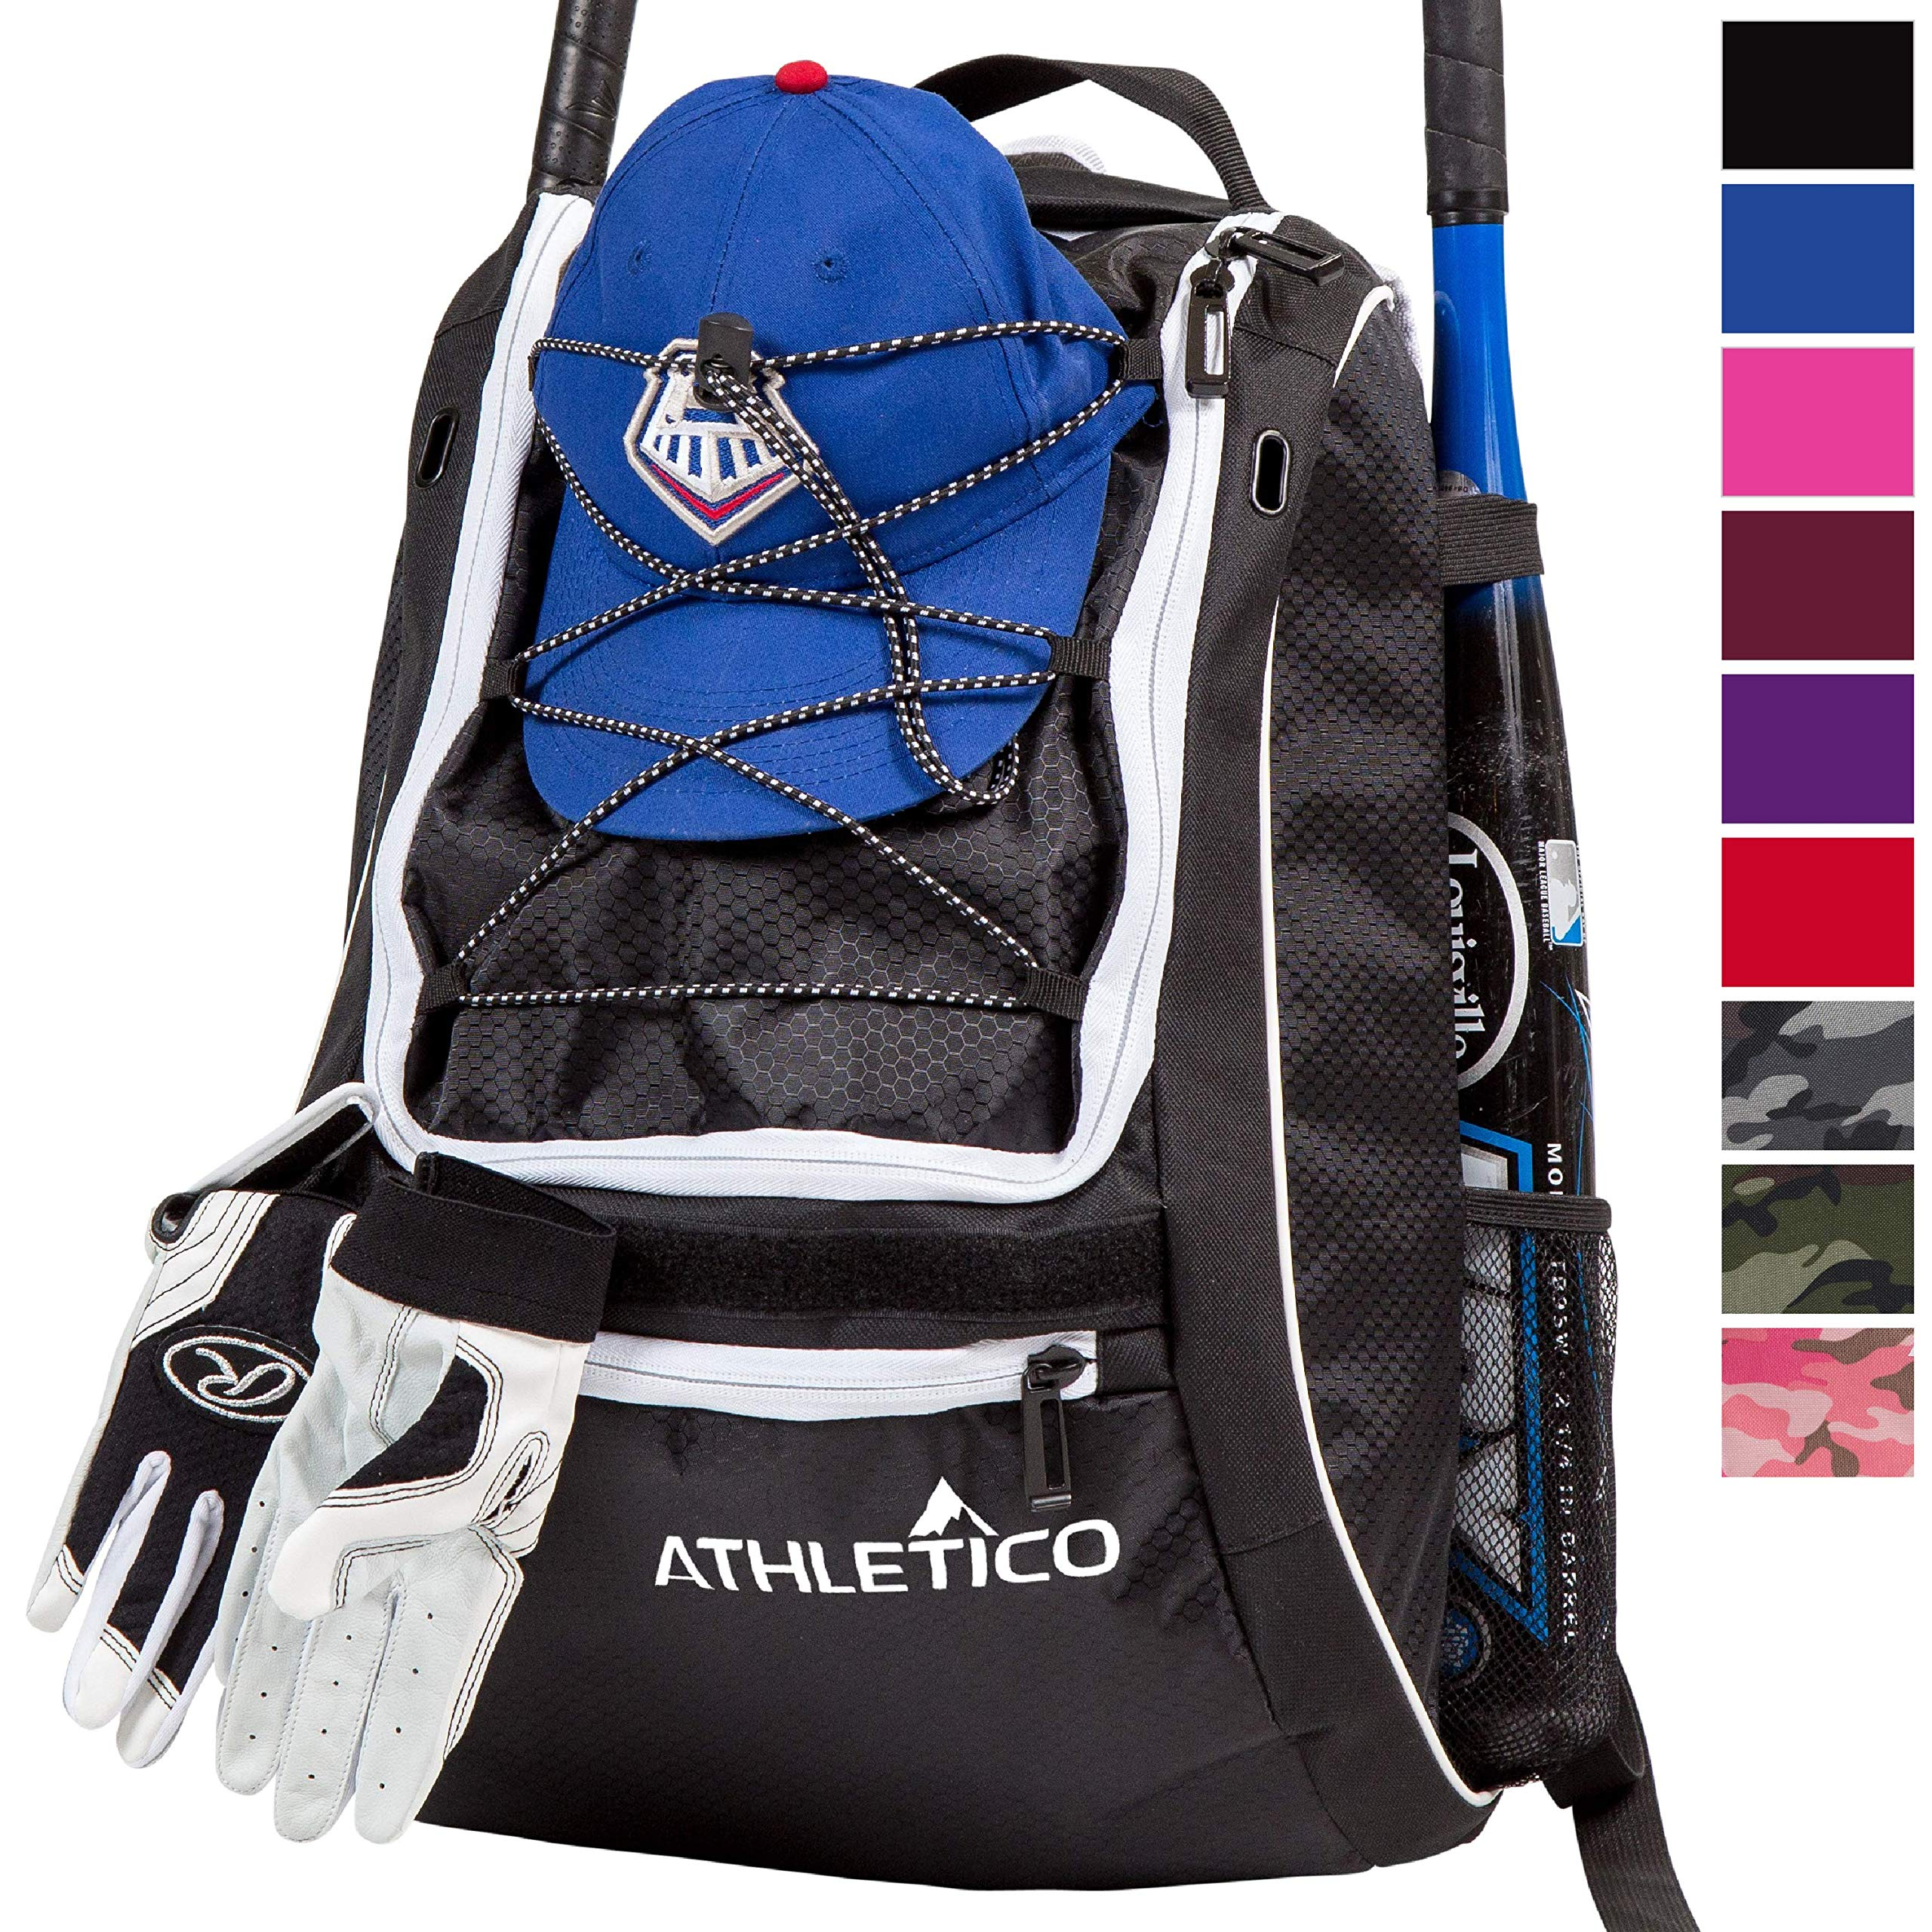 Athletico Baseball Bat Bag - Backpack for Baseball, T-Ball & Softball Equipment & Gear for Youth and Adults | Holds Bat, Helmet, Glove, Shoes | Separate Shoe Compartment, Fence Hook (Black) by Athletico